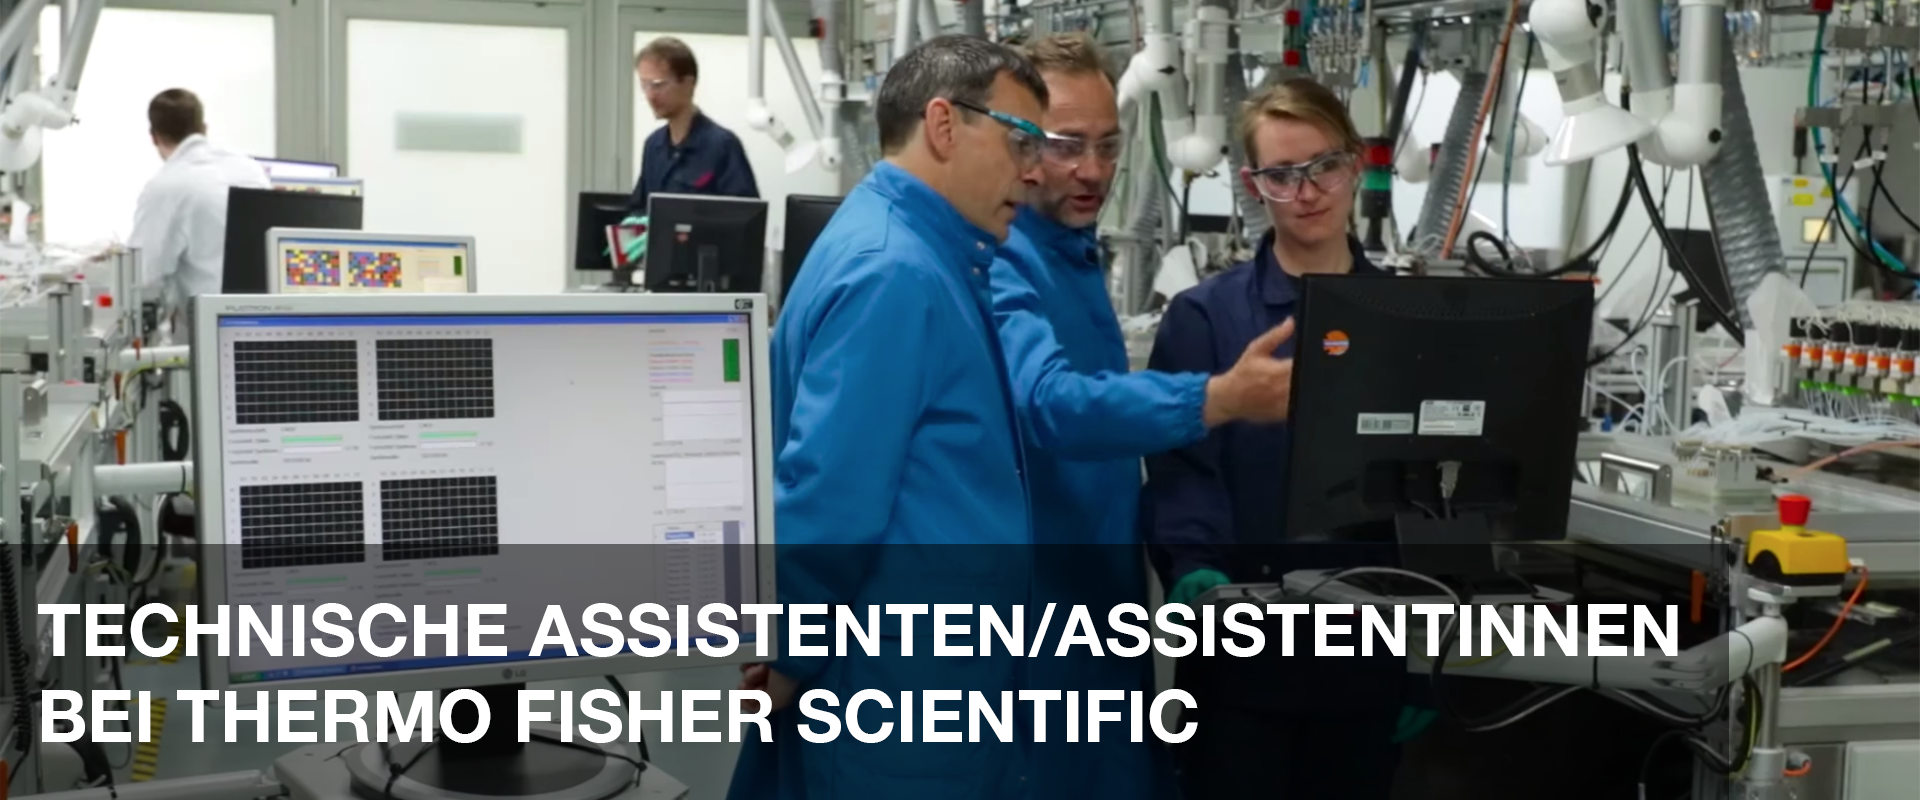 TECHNISCHE ASSISTENTEN/ASSISTENTINNEN BEI THERMO FISHER SCIENTIFIC